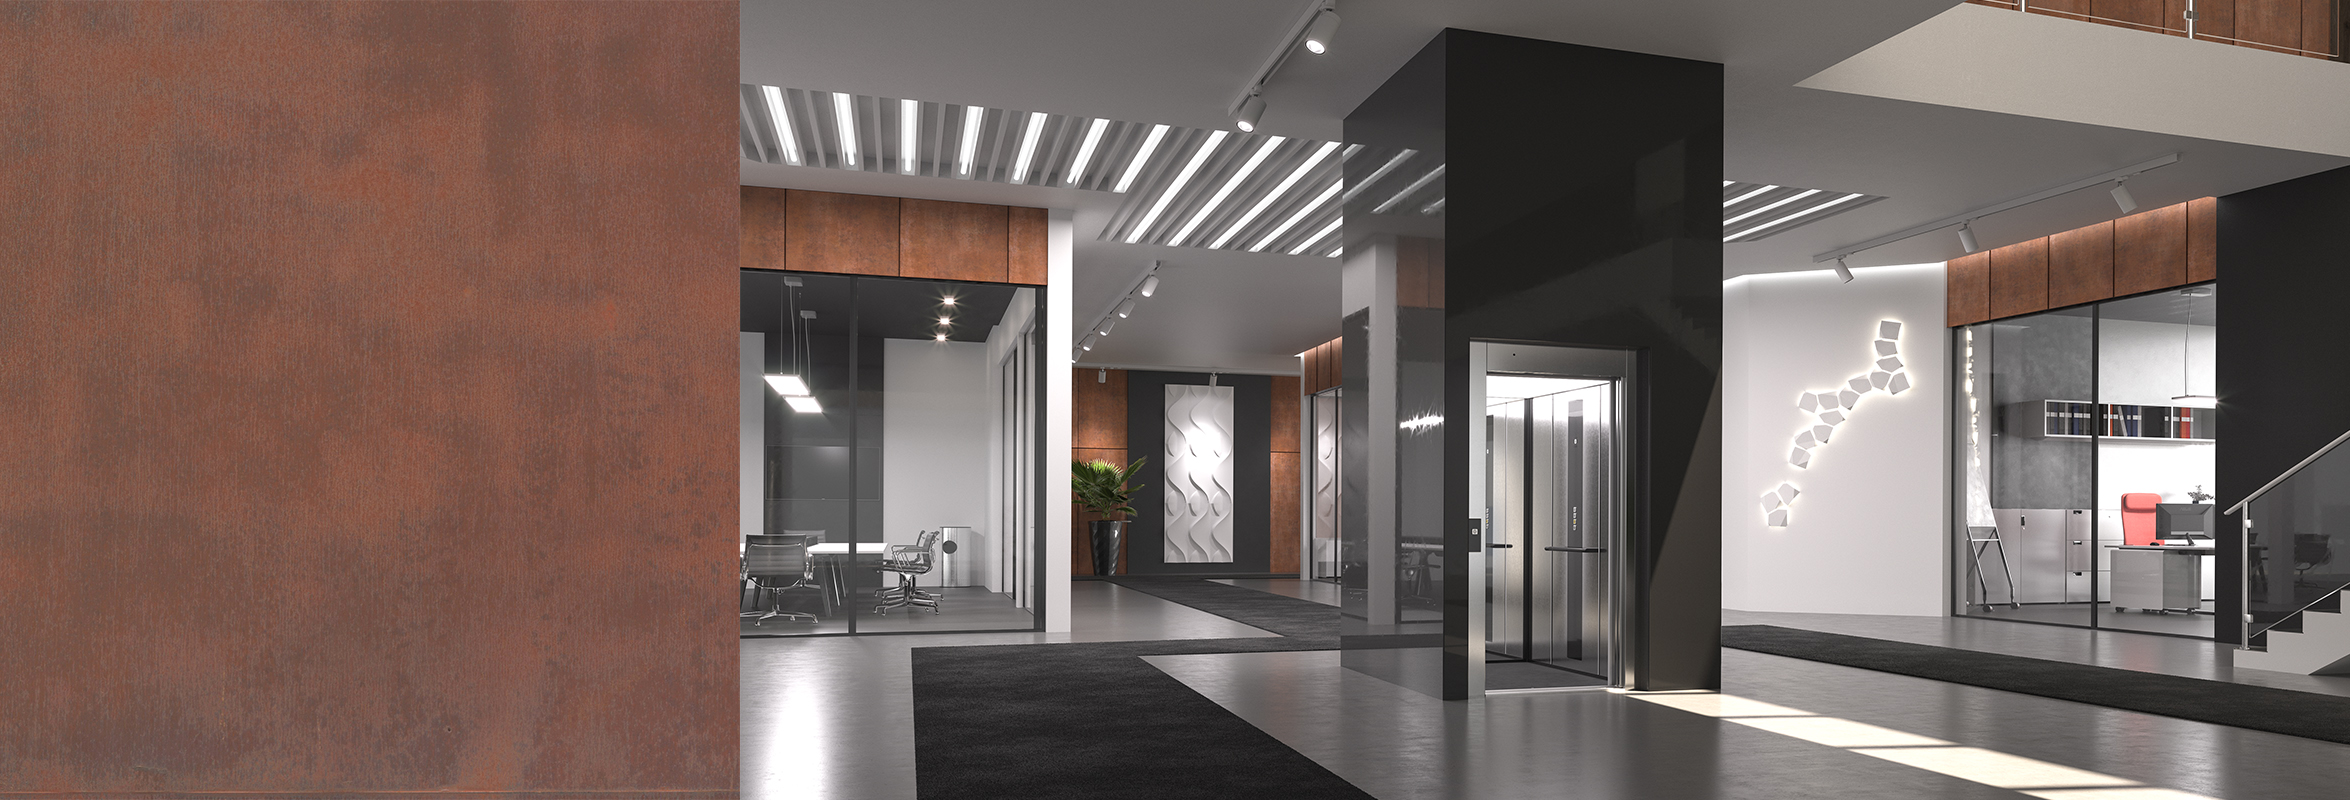 Modular lift in office building